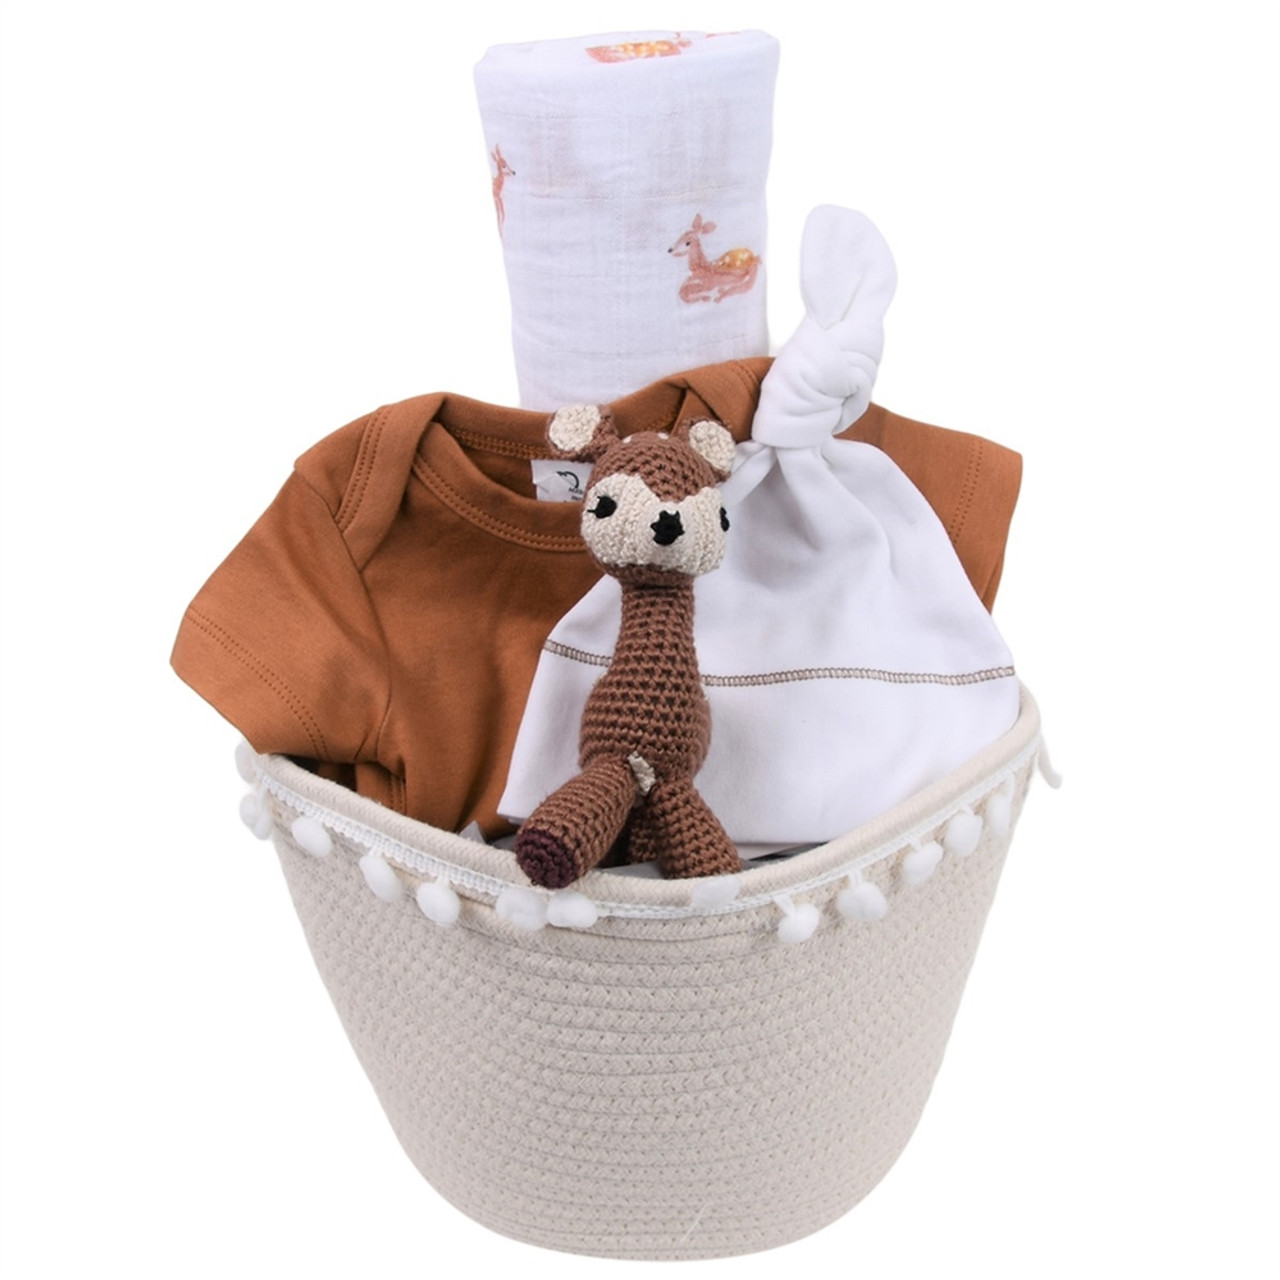 Spring Baby Gift Basket - Forest Fawn